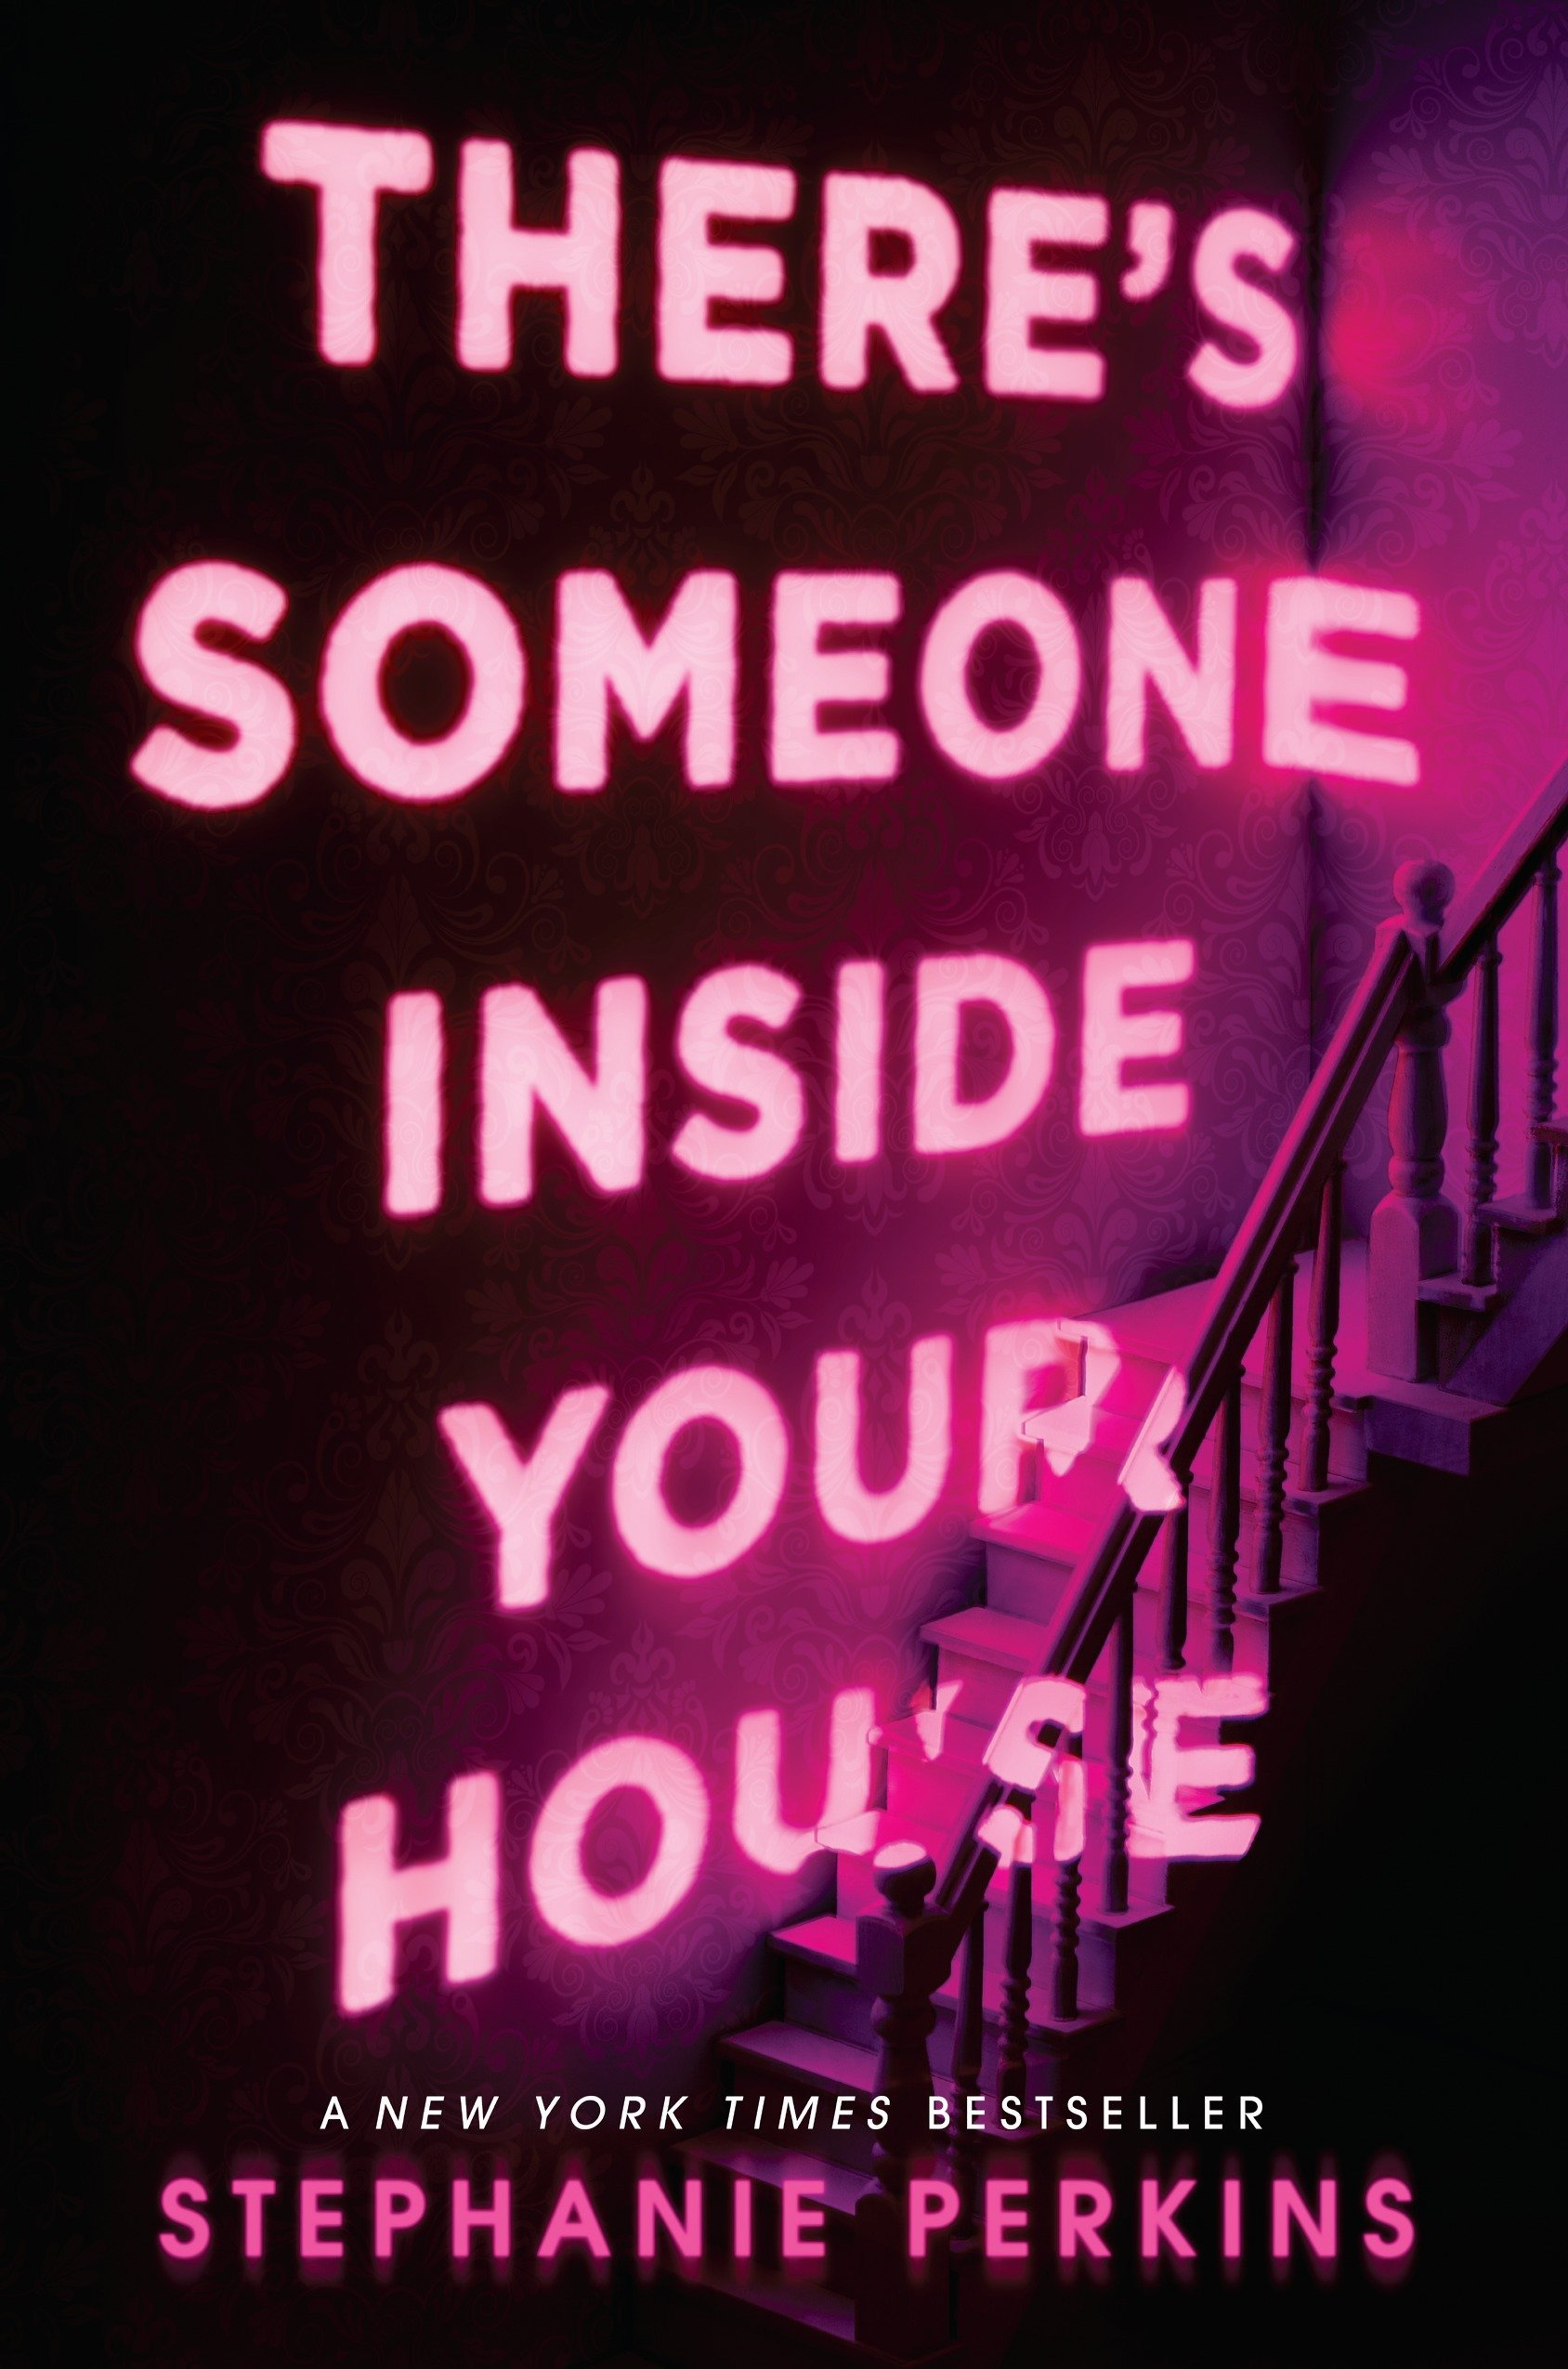 Image result for theres someone inside your house